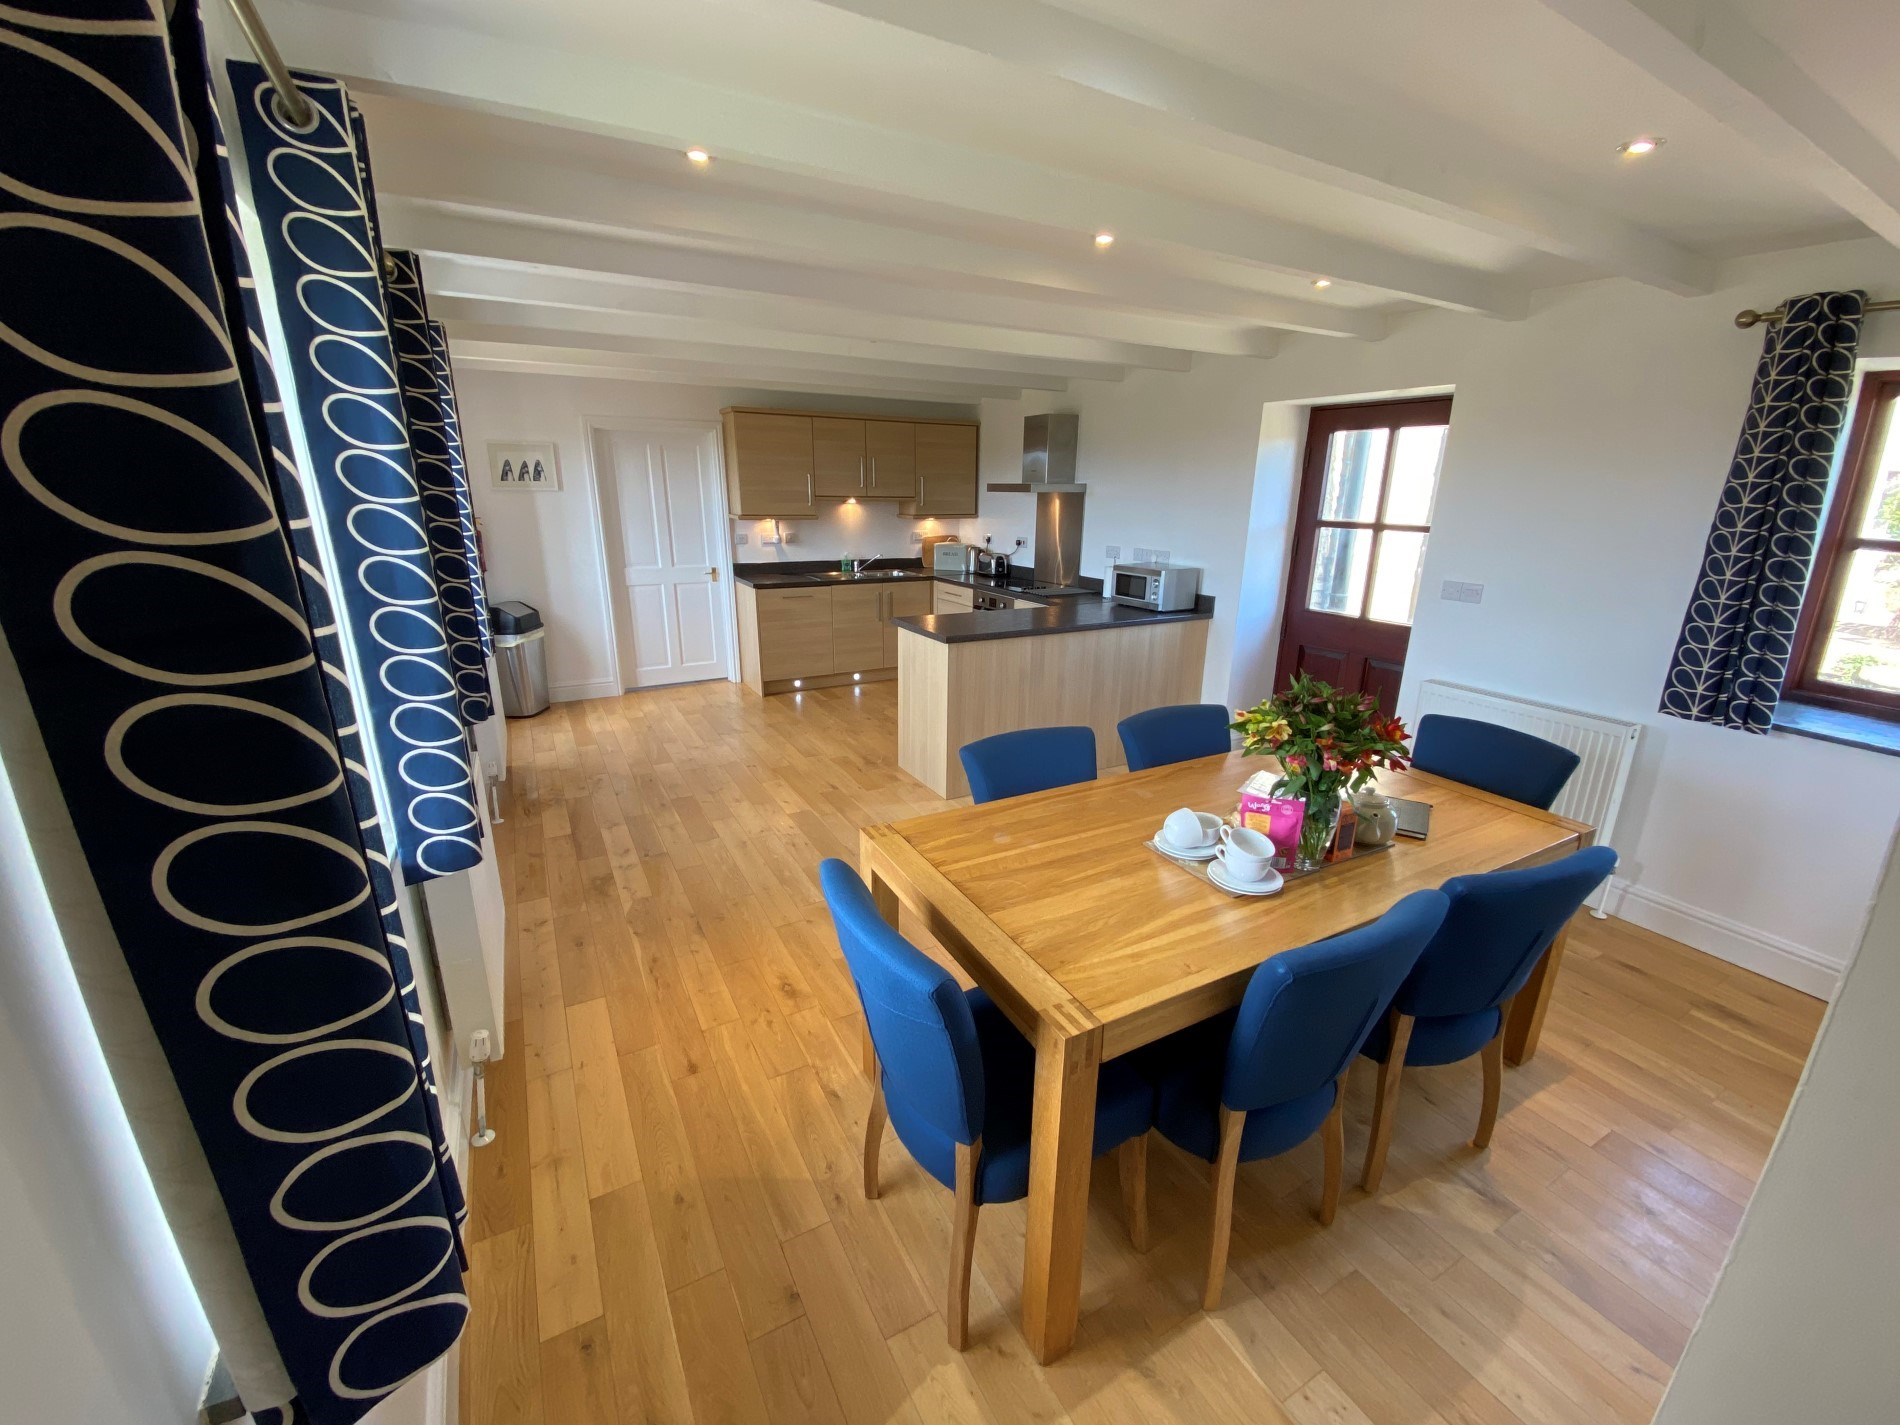 3 Bedroom Cottage in Penzance, Cornwall